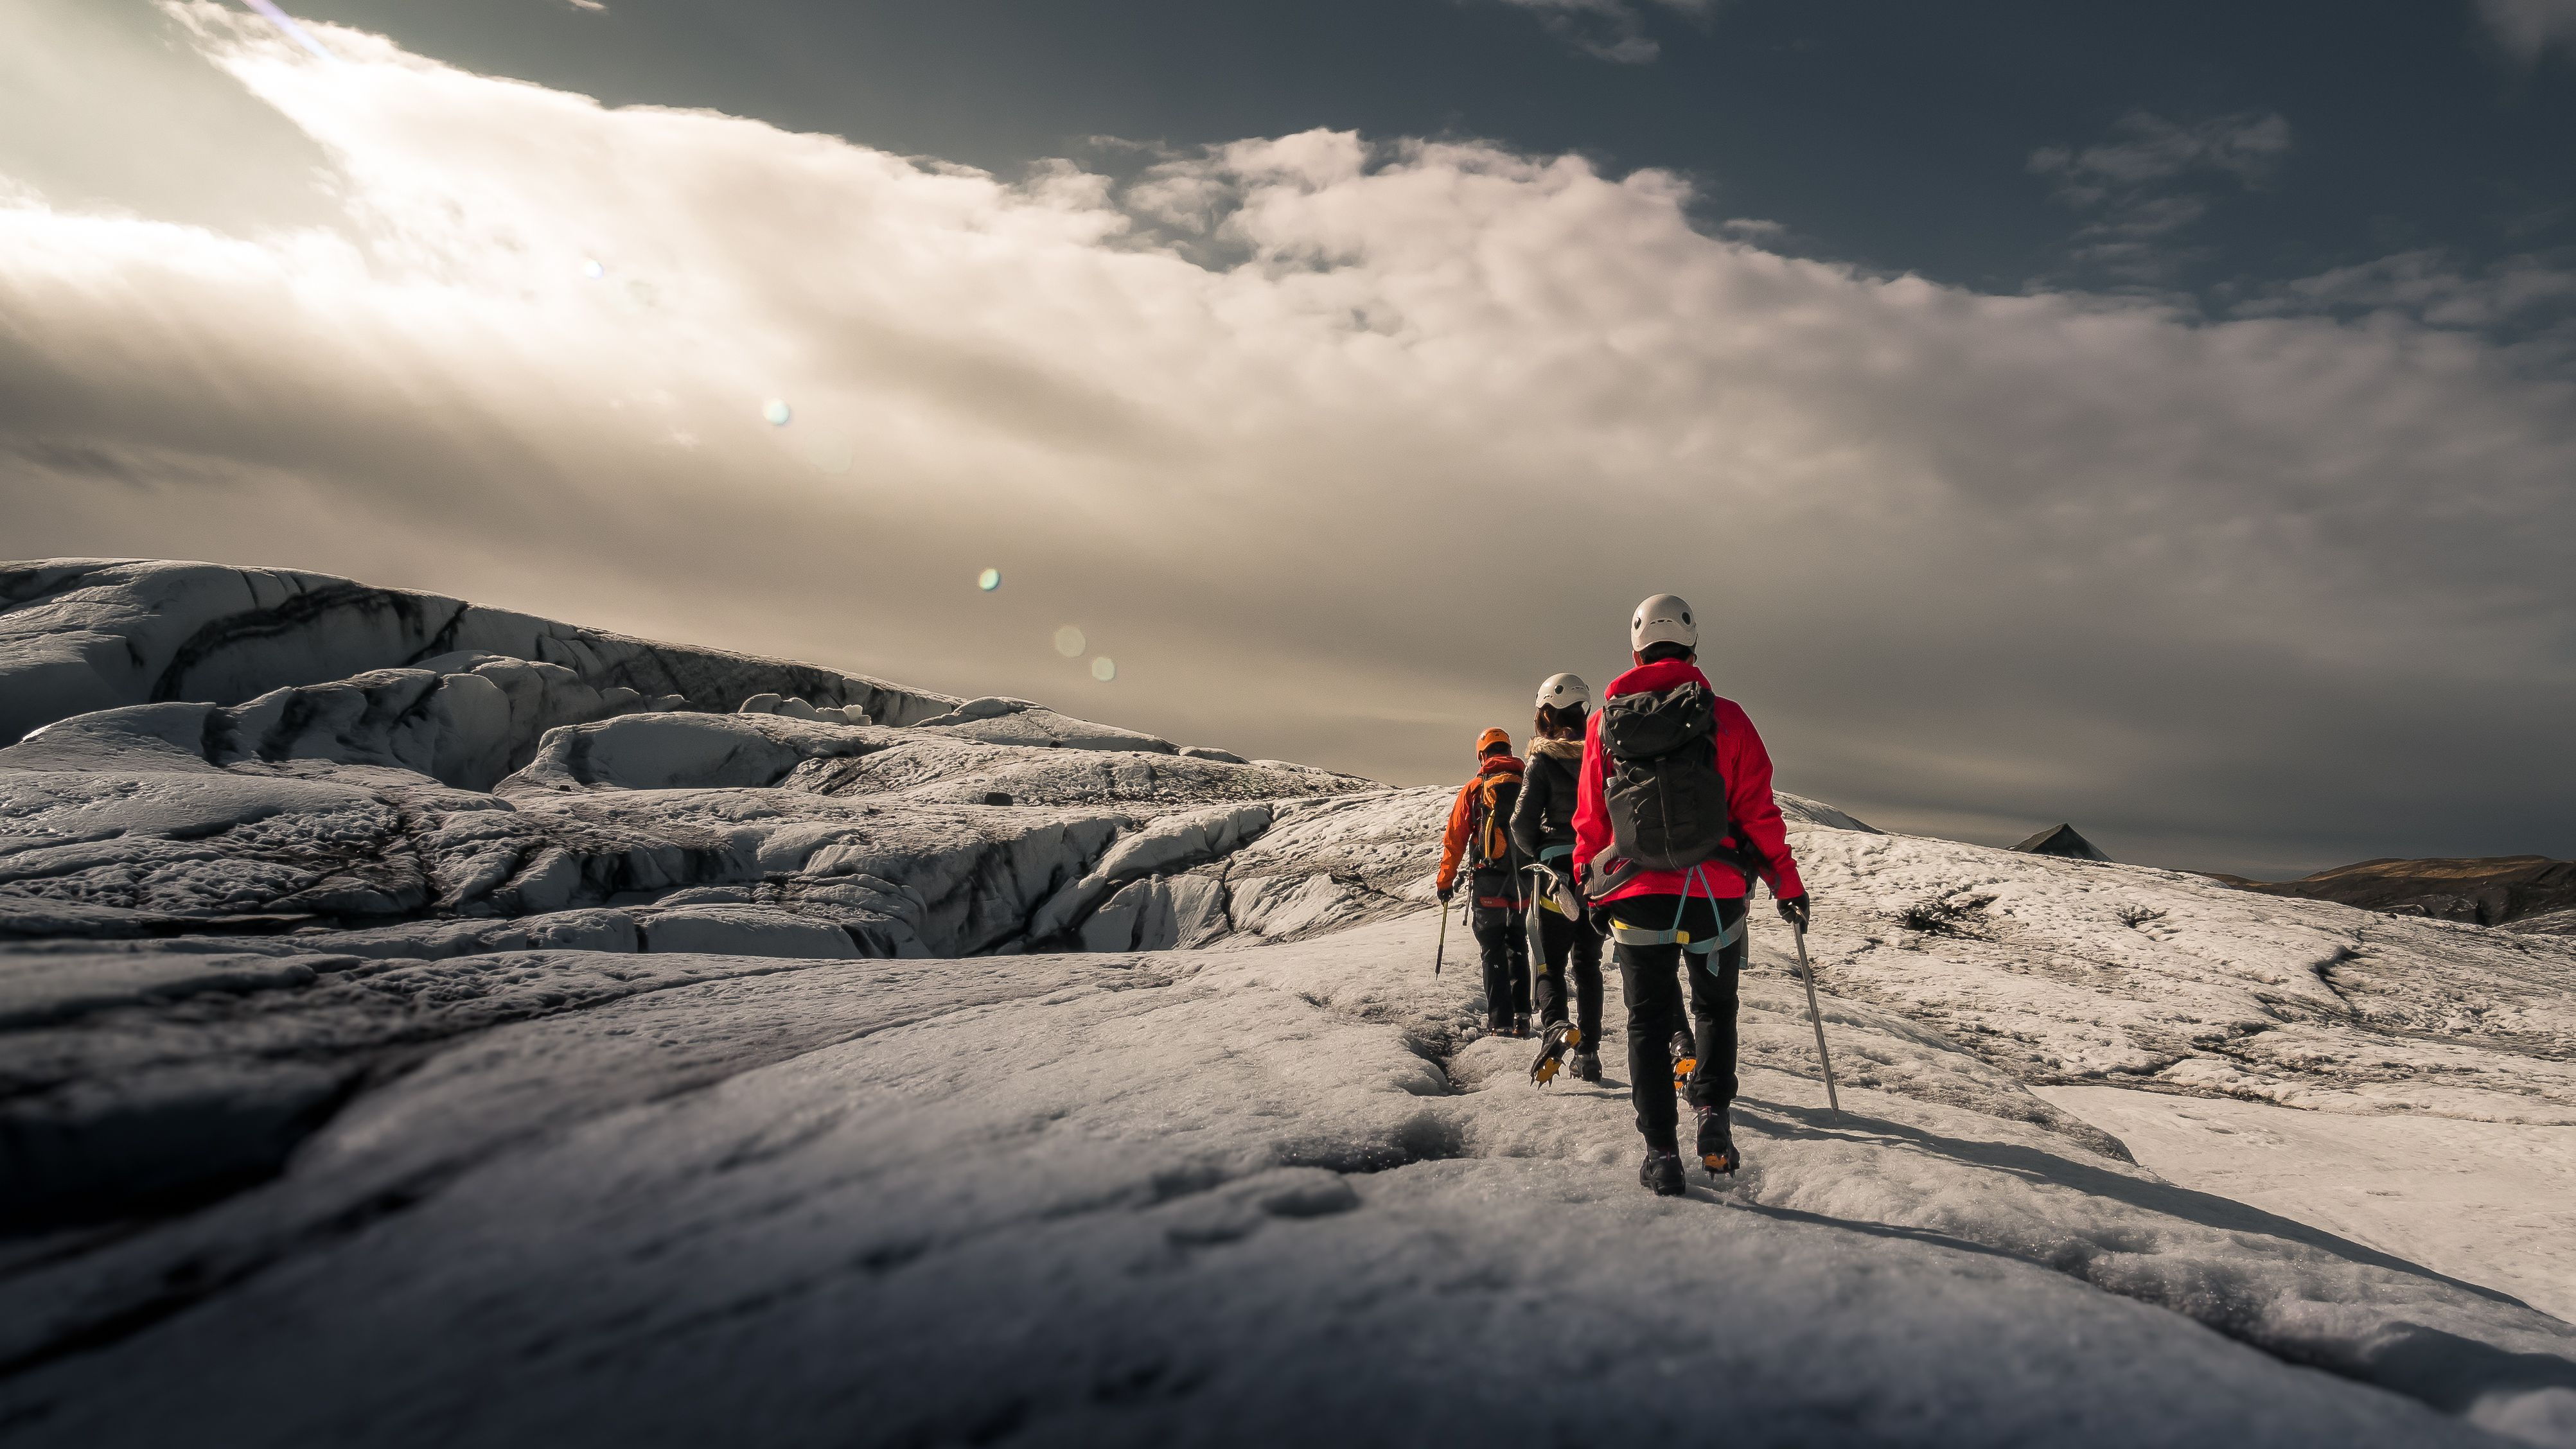 a group of people in full gear hiking on a glacier